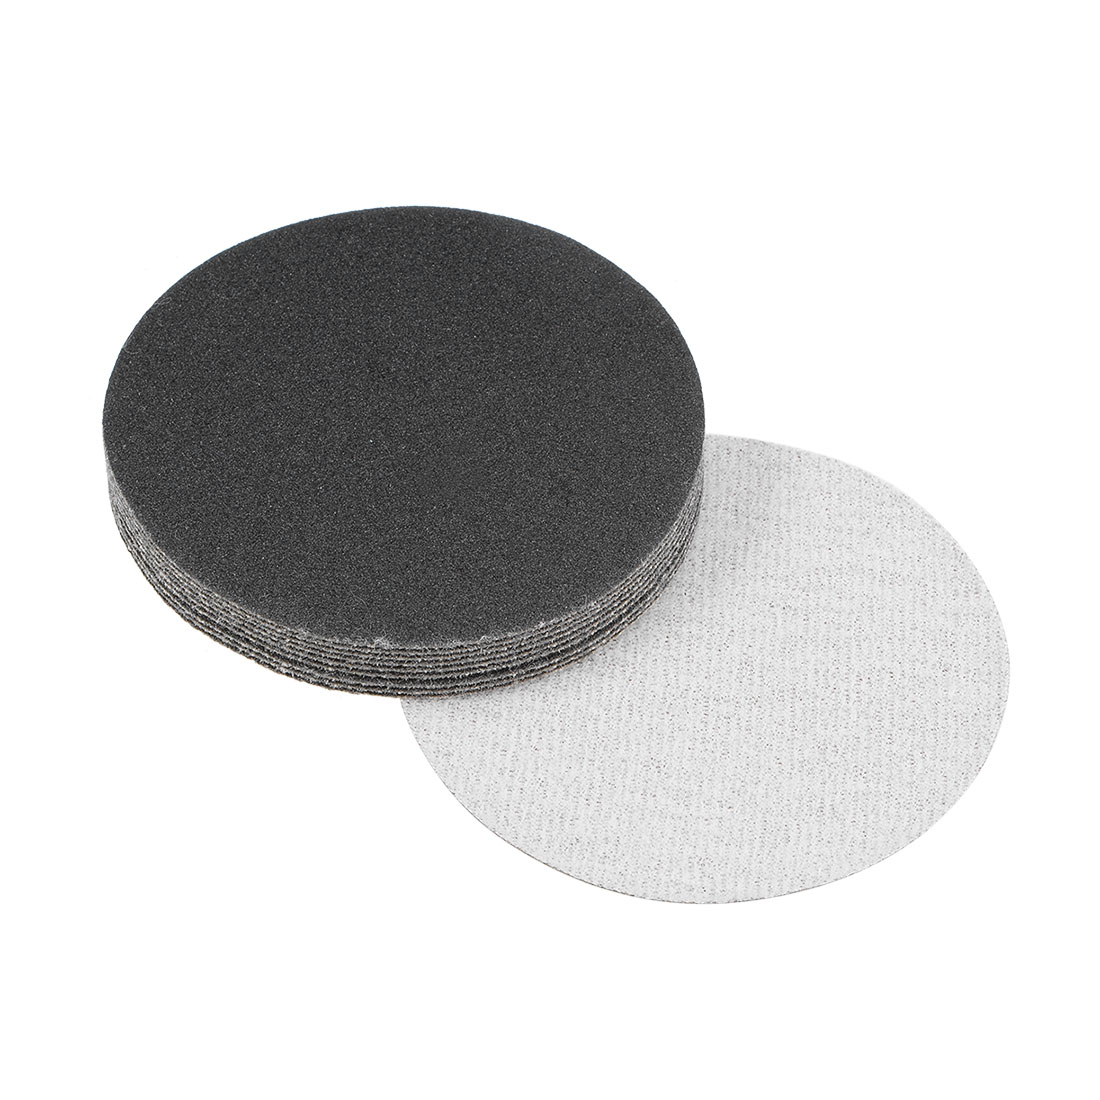 3 inch Wet Dry Discs 150 Grit Hook and Loop Sanding Disc Silicon Carbide 10pcs